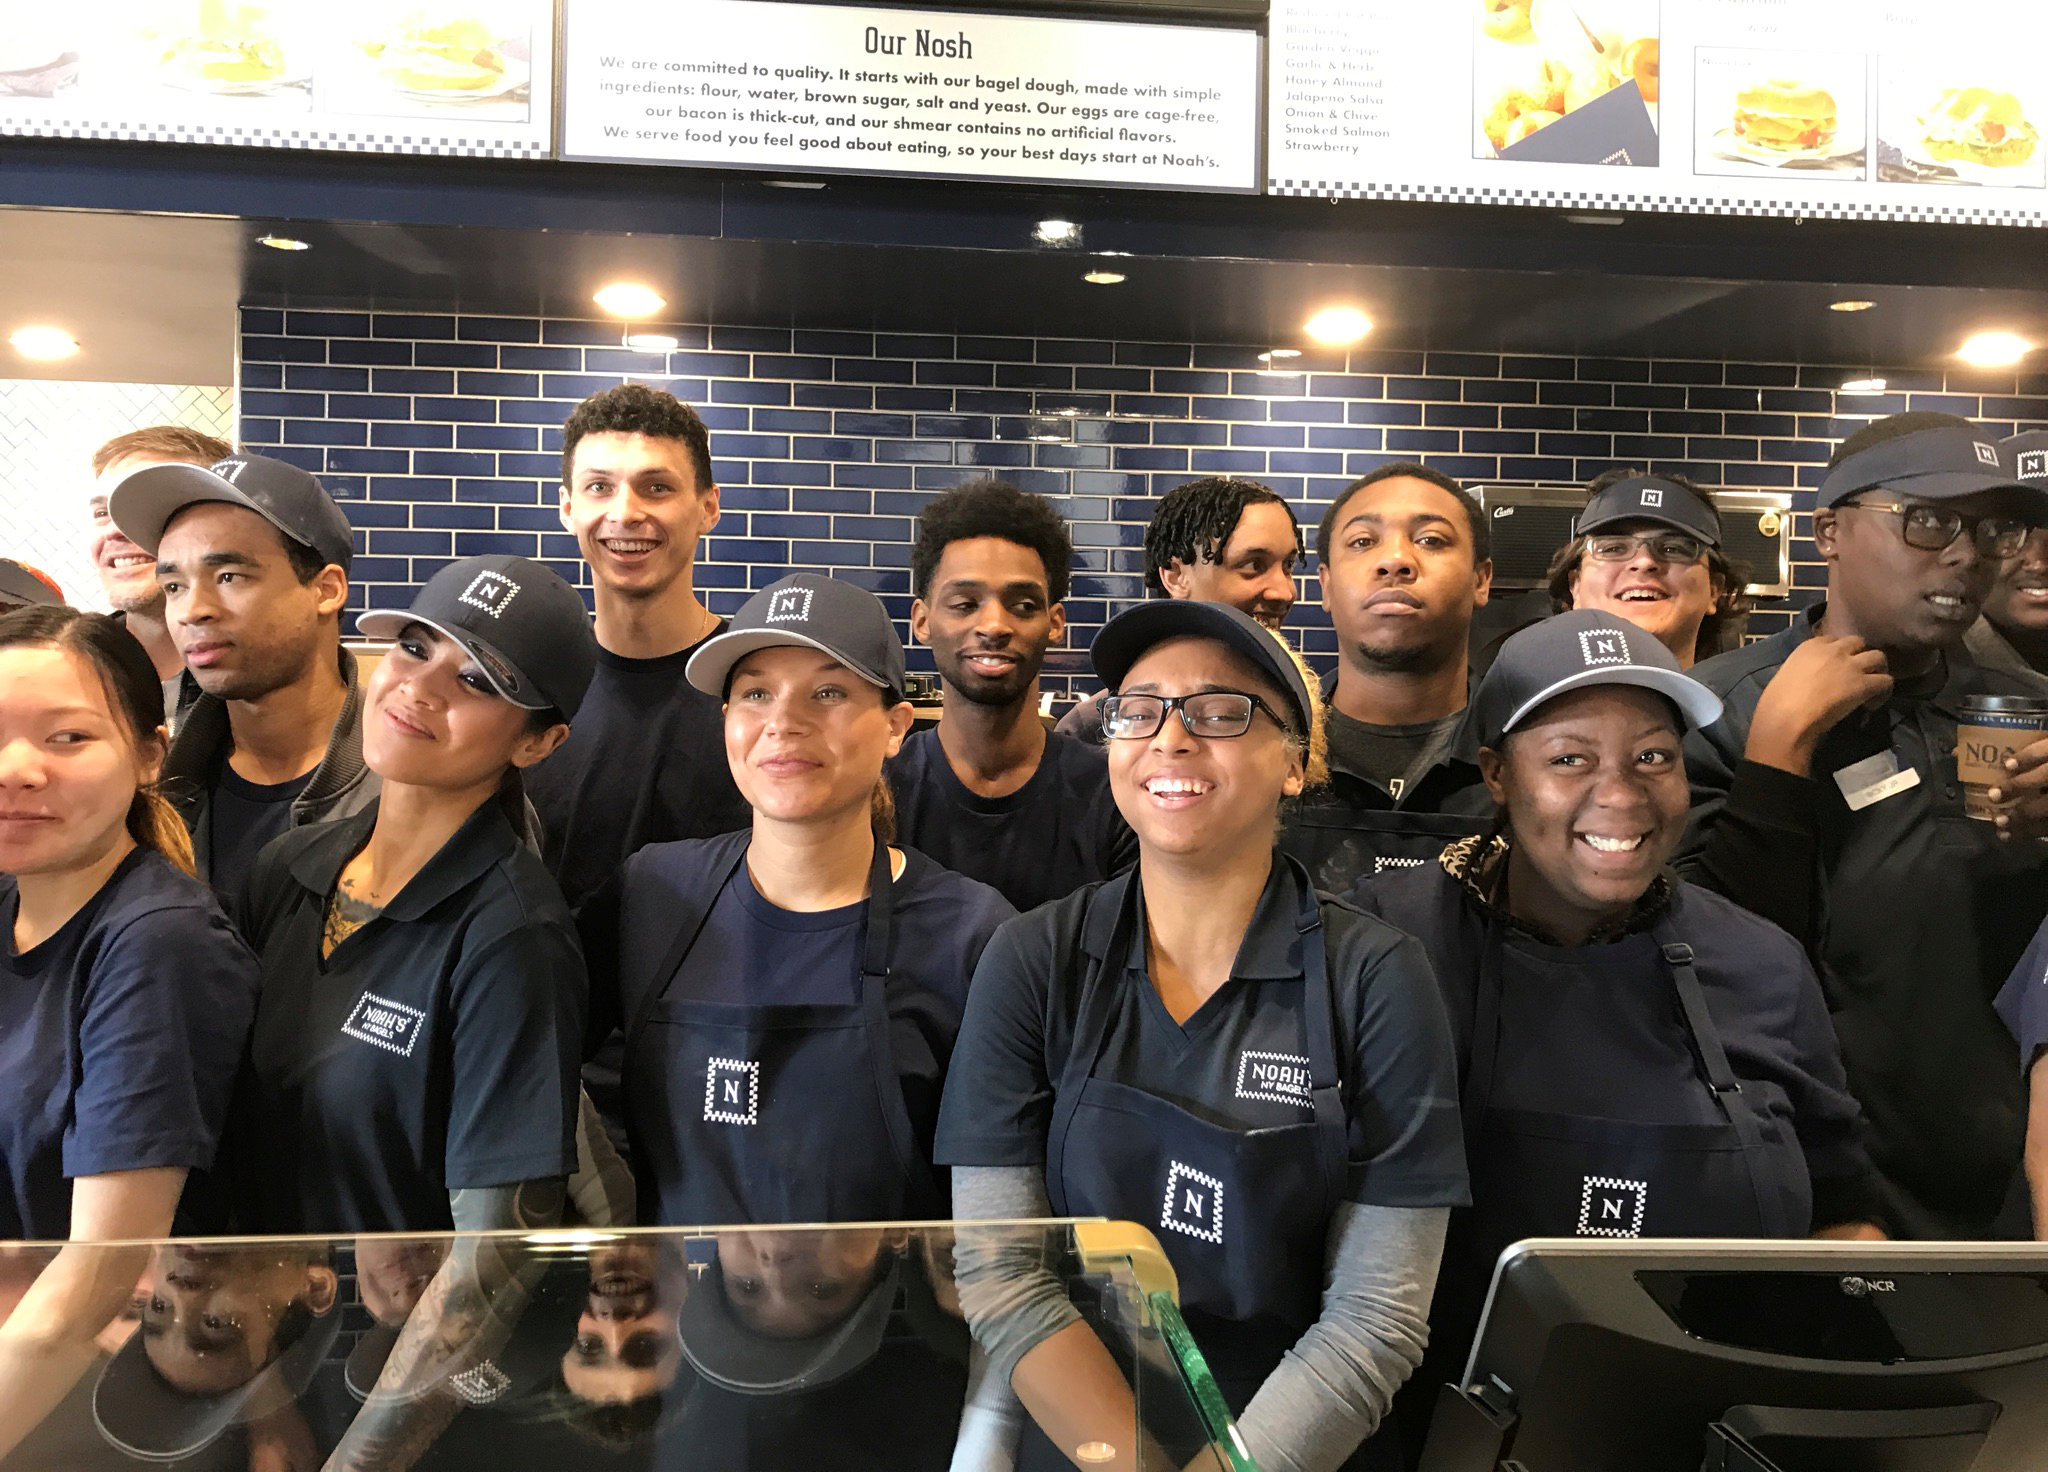 Newly hired employees take a break from training to pose for a group photo at the chain's soon-to-open 54th outlet in Oakland, California ,U.S., January 24, 2018.